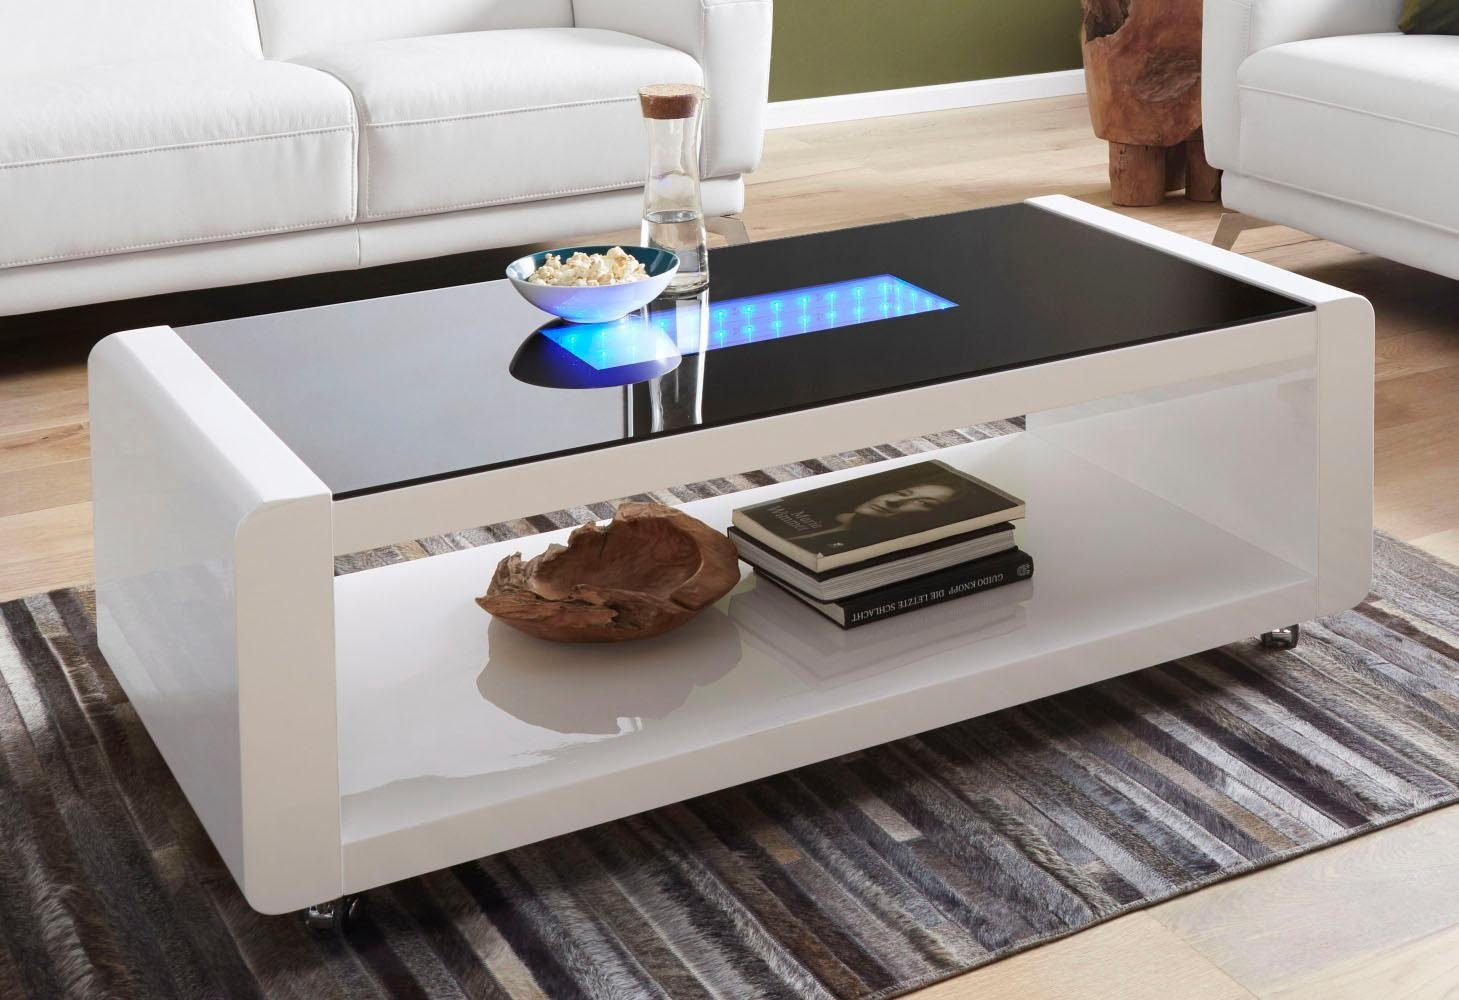 Couchtisch Mit Led Beleuchtung Homexperts Couchtisch Mit 3d-led-beleuchtung, Auf Rollen